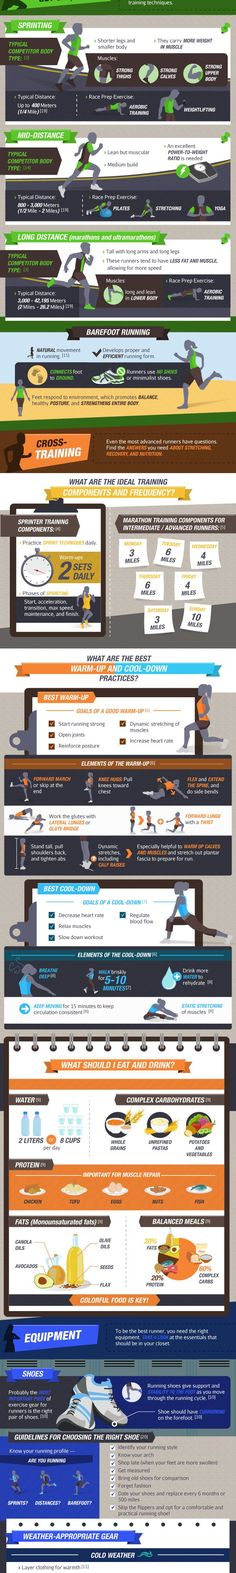 The Ultimate Runner's Guide Infographic